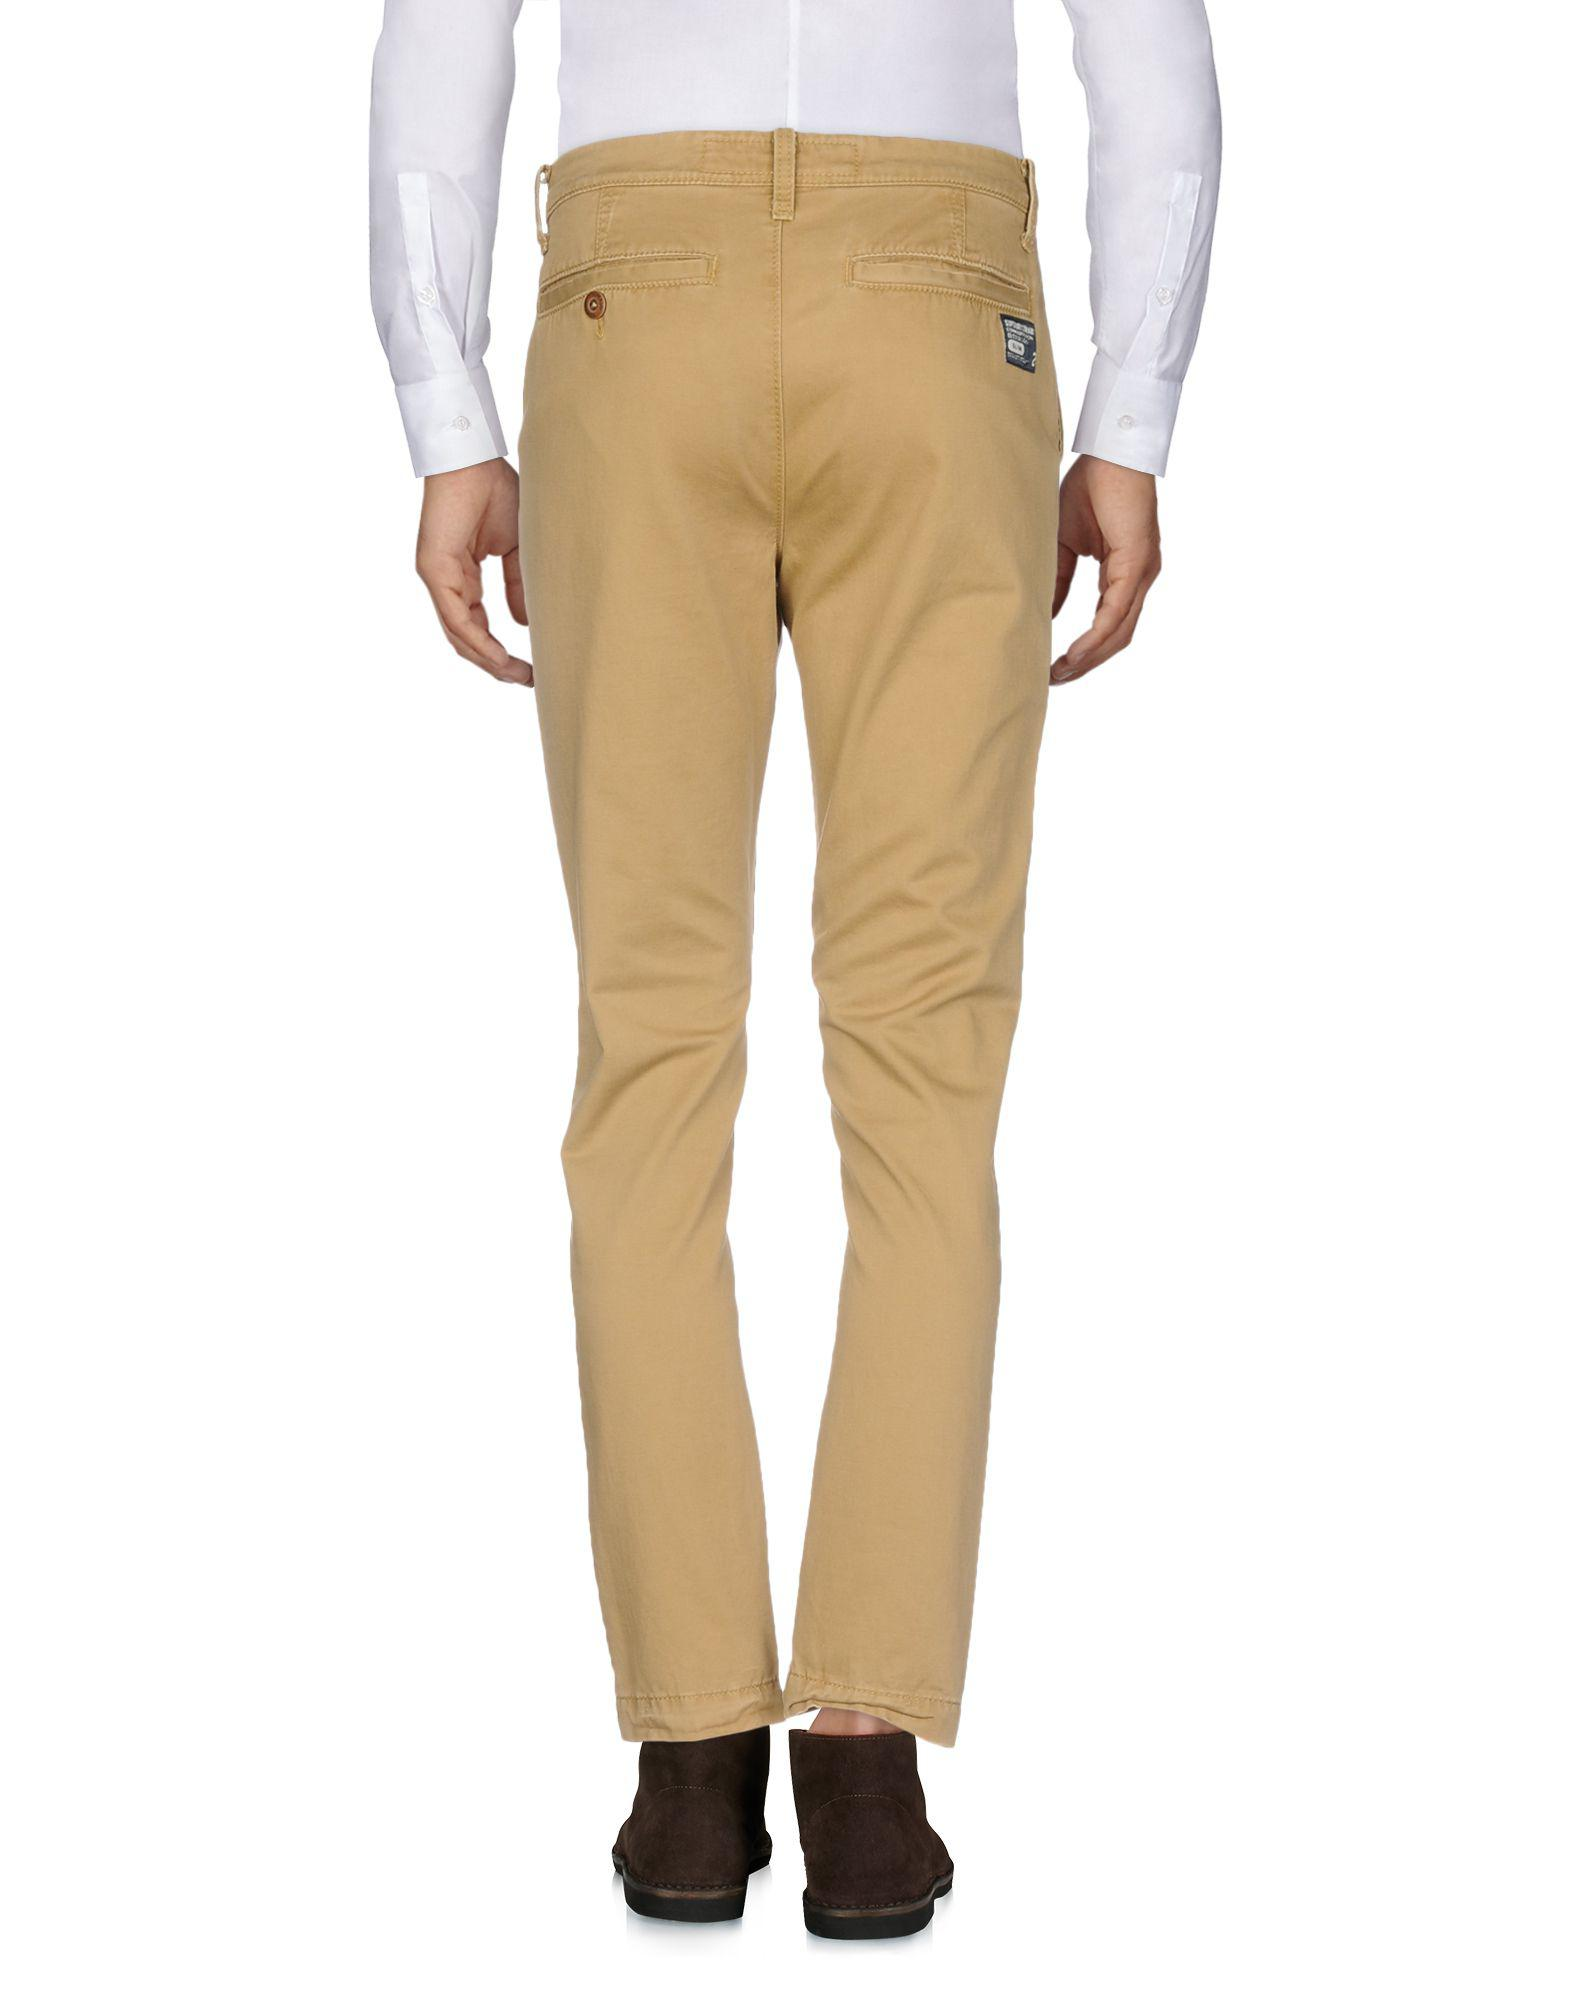 Superdry Cotton Casual Trouser in Camel (Natural) for Men